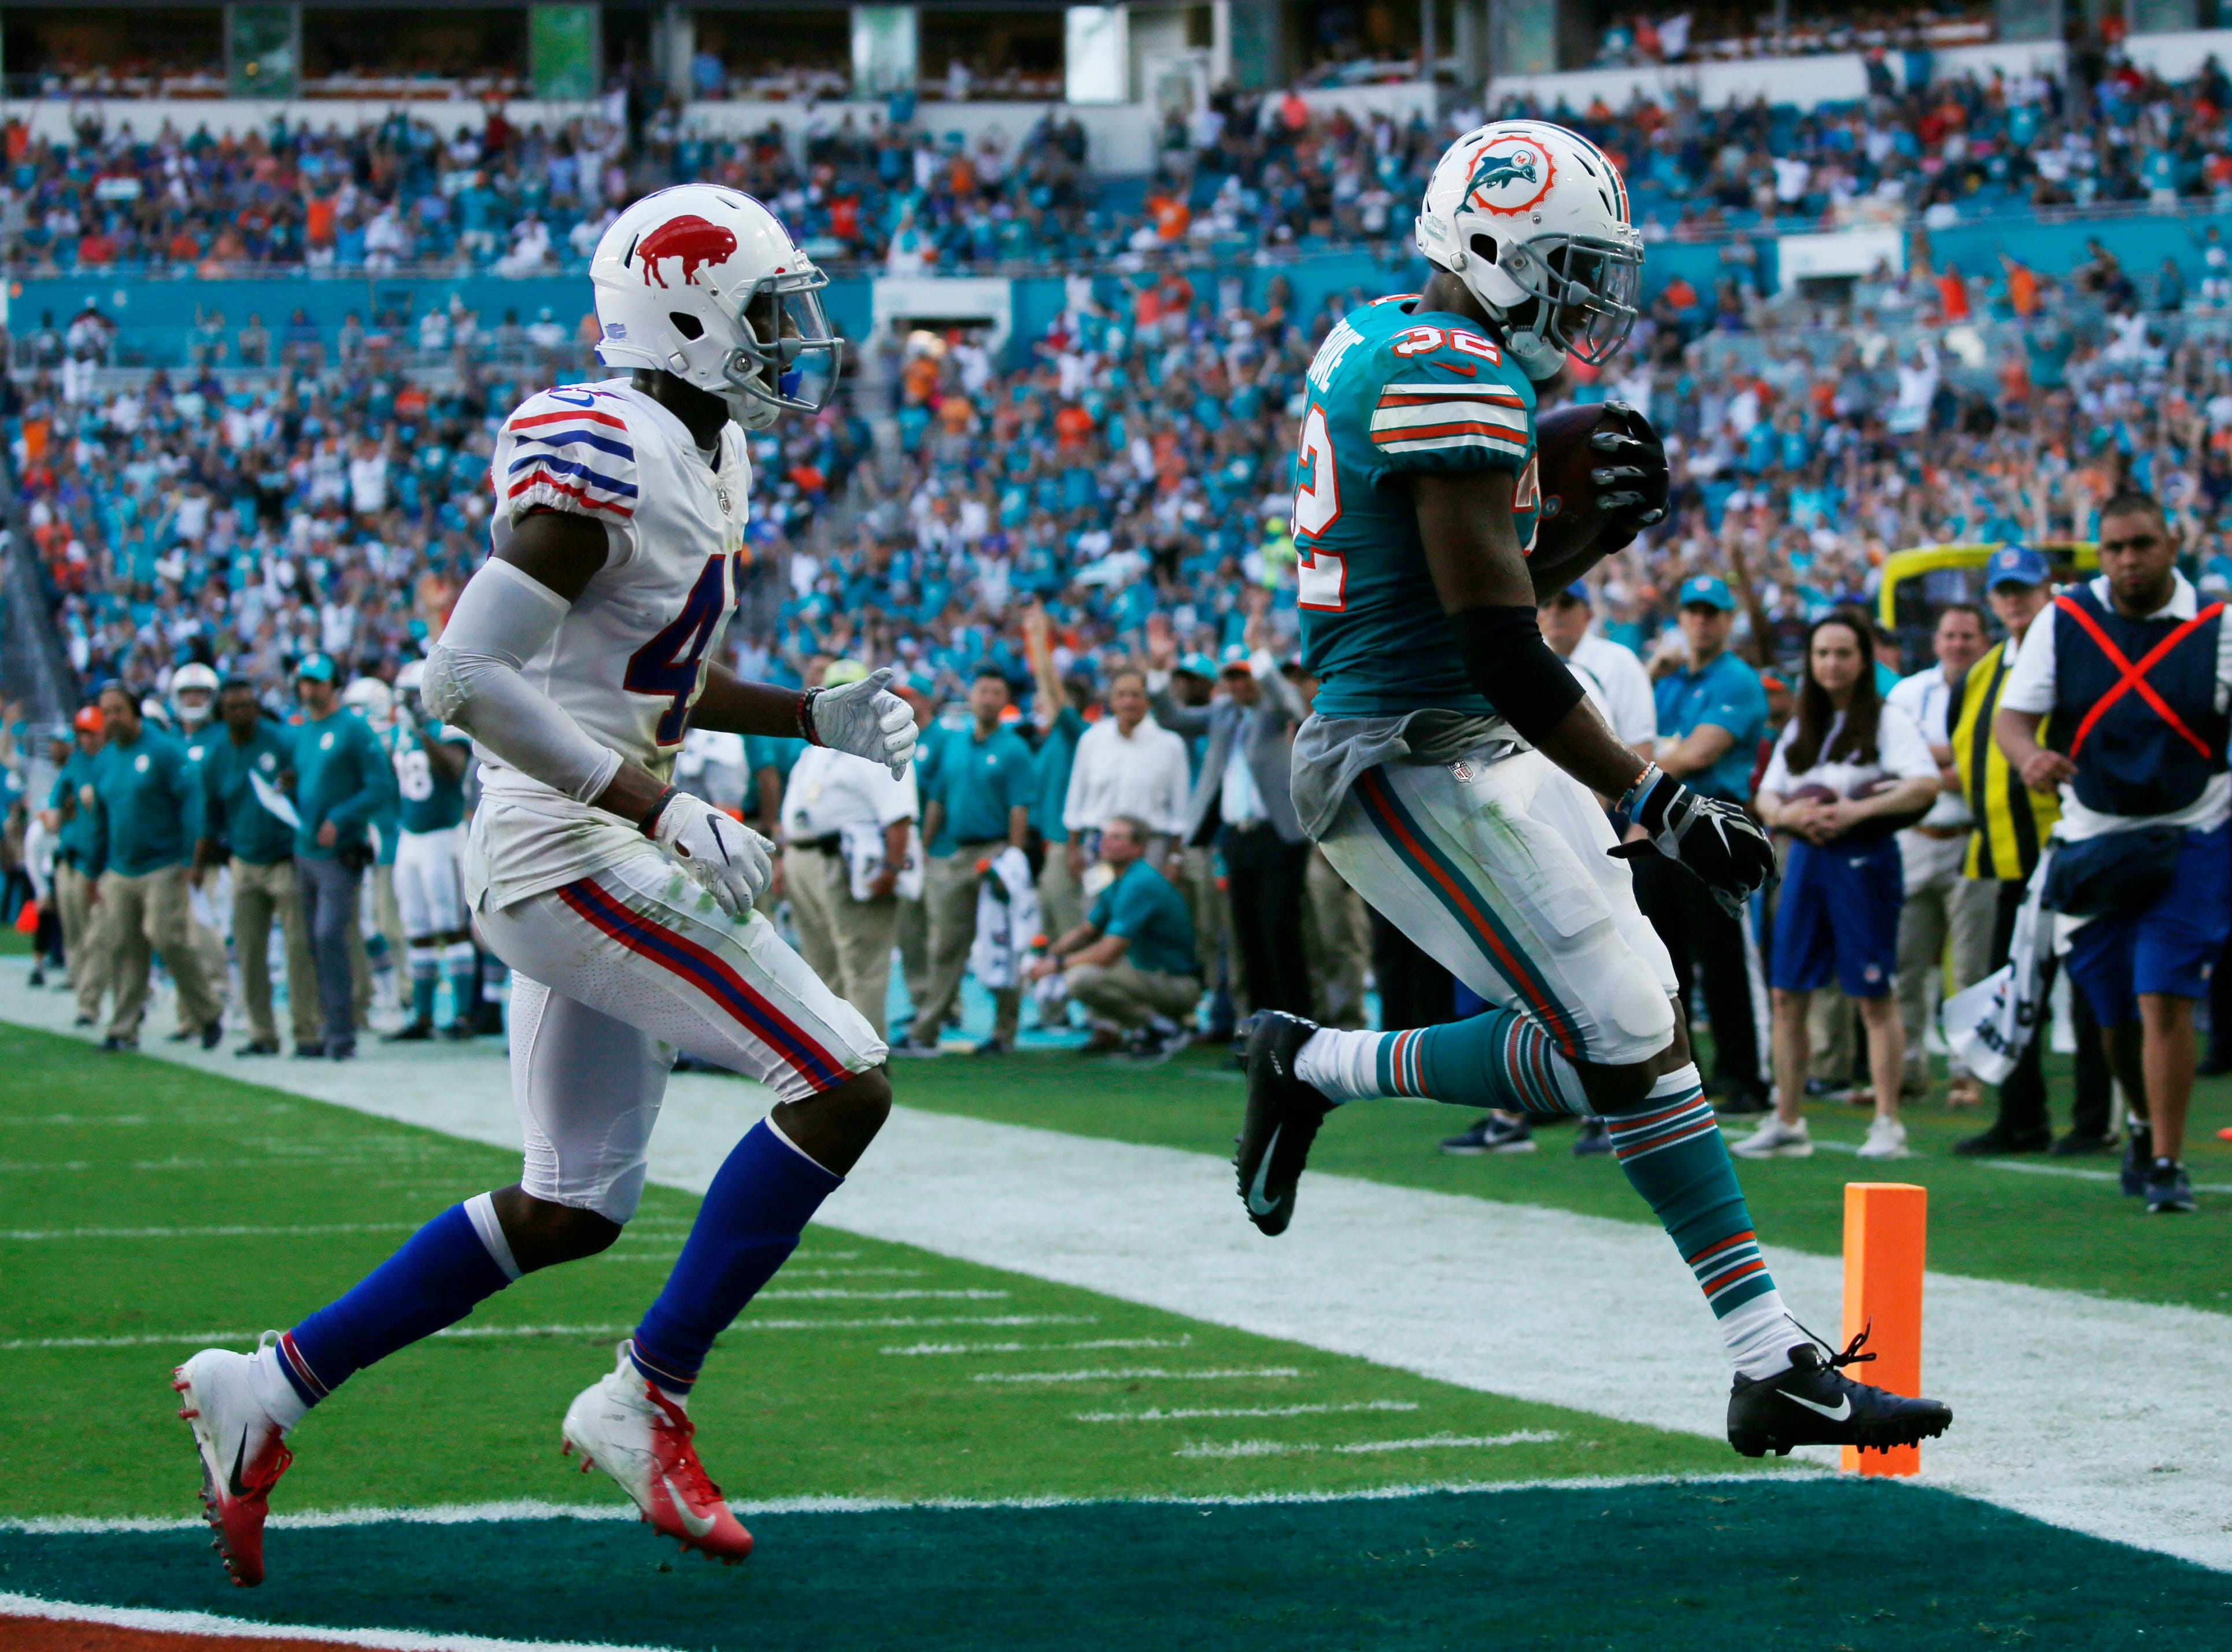 Miami Dolphins running back Kenyan Drake (32) runs for a touchdown ahead of Buffalo Bills defensive back Levi Wallace (47), during the first half of an NFL football game, Sunday, Dec. 2, 2018, in Miami Gardens, Fla. (AP Photo/Joel Auerbach)